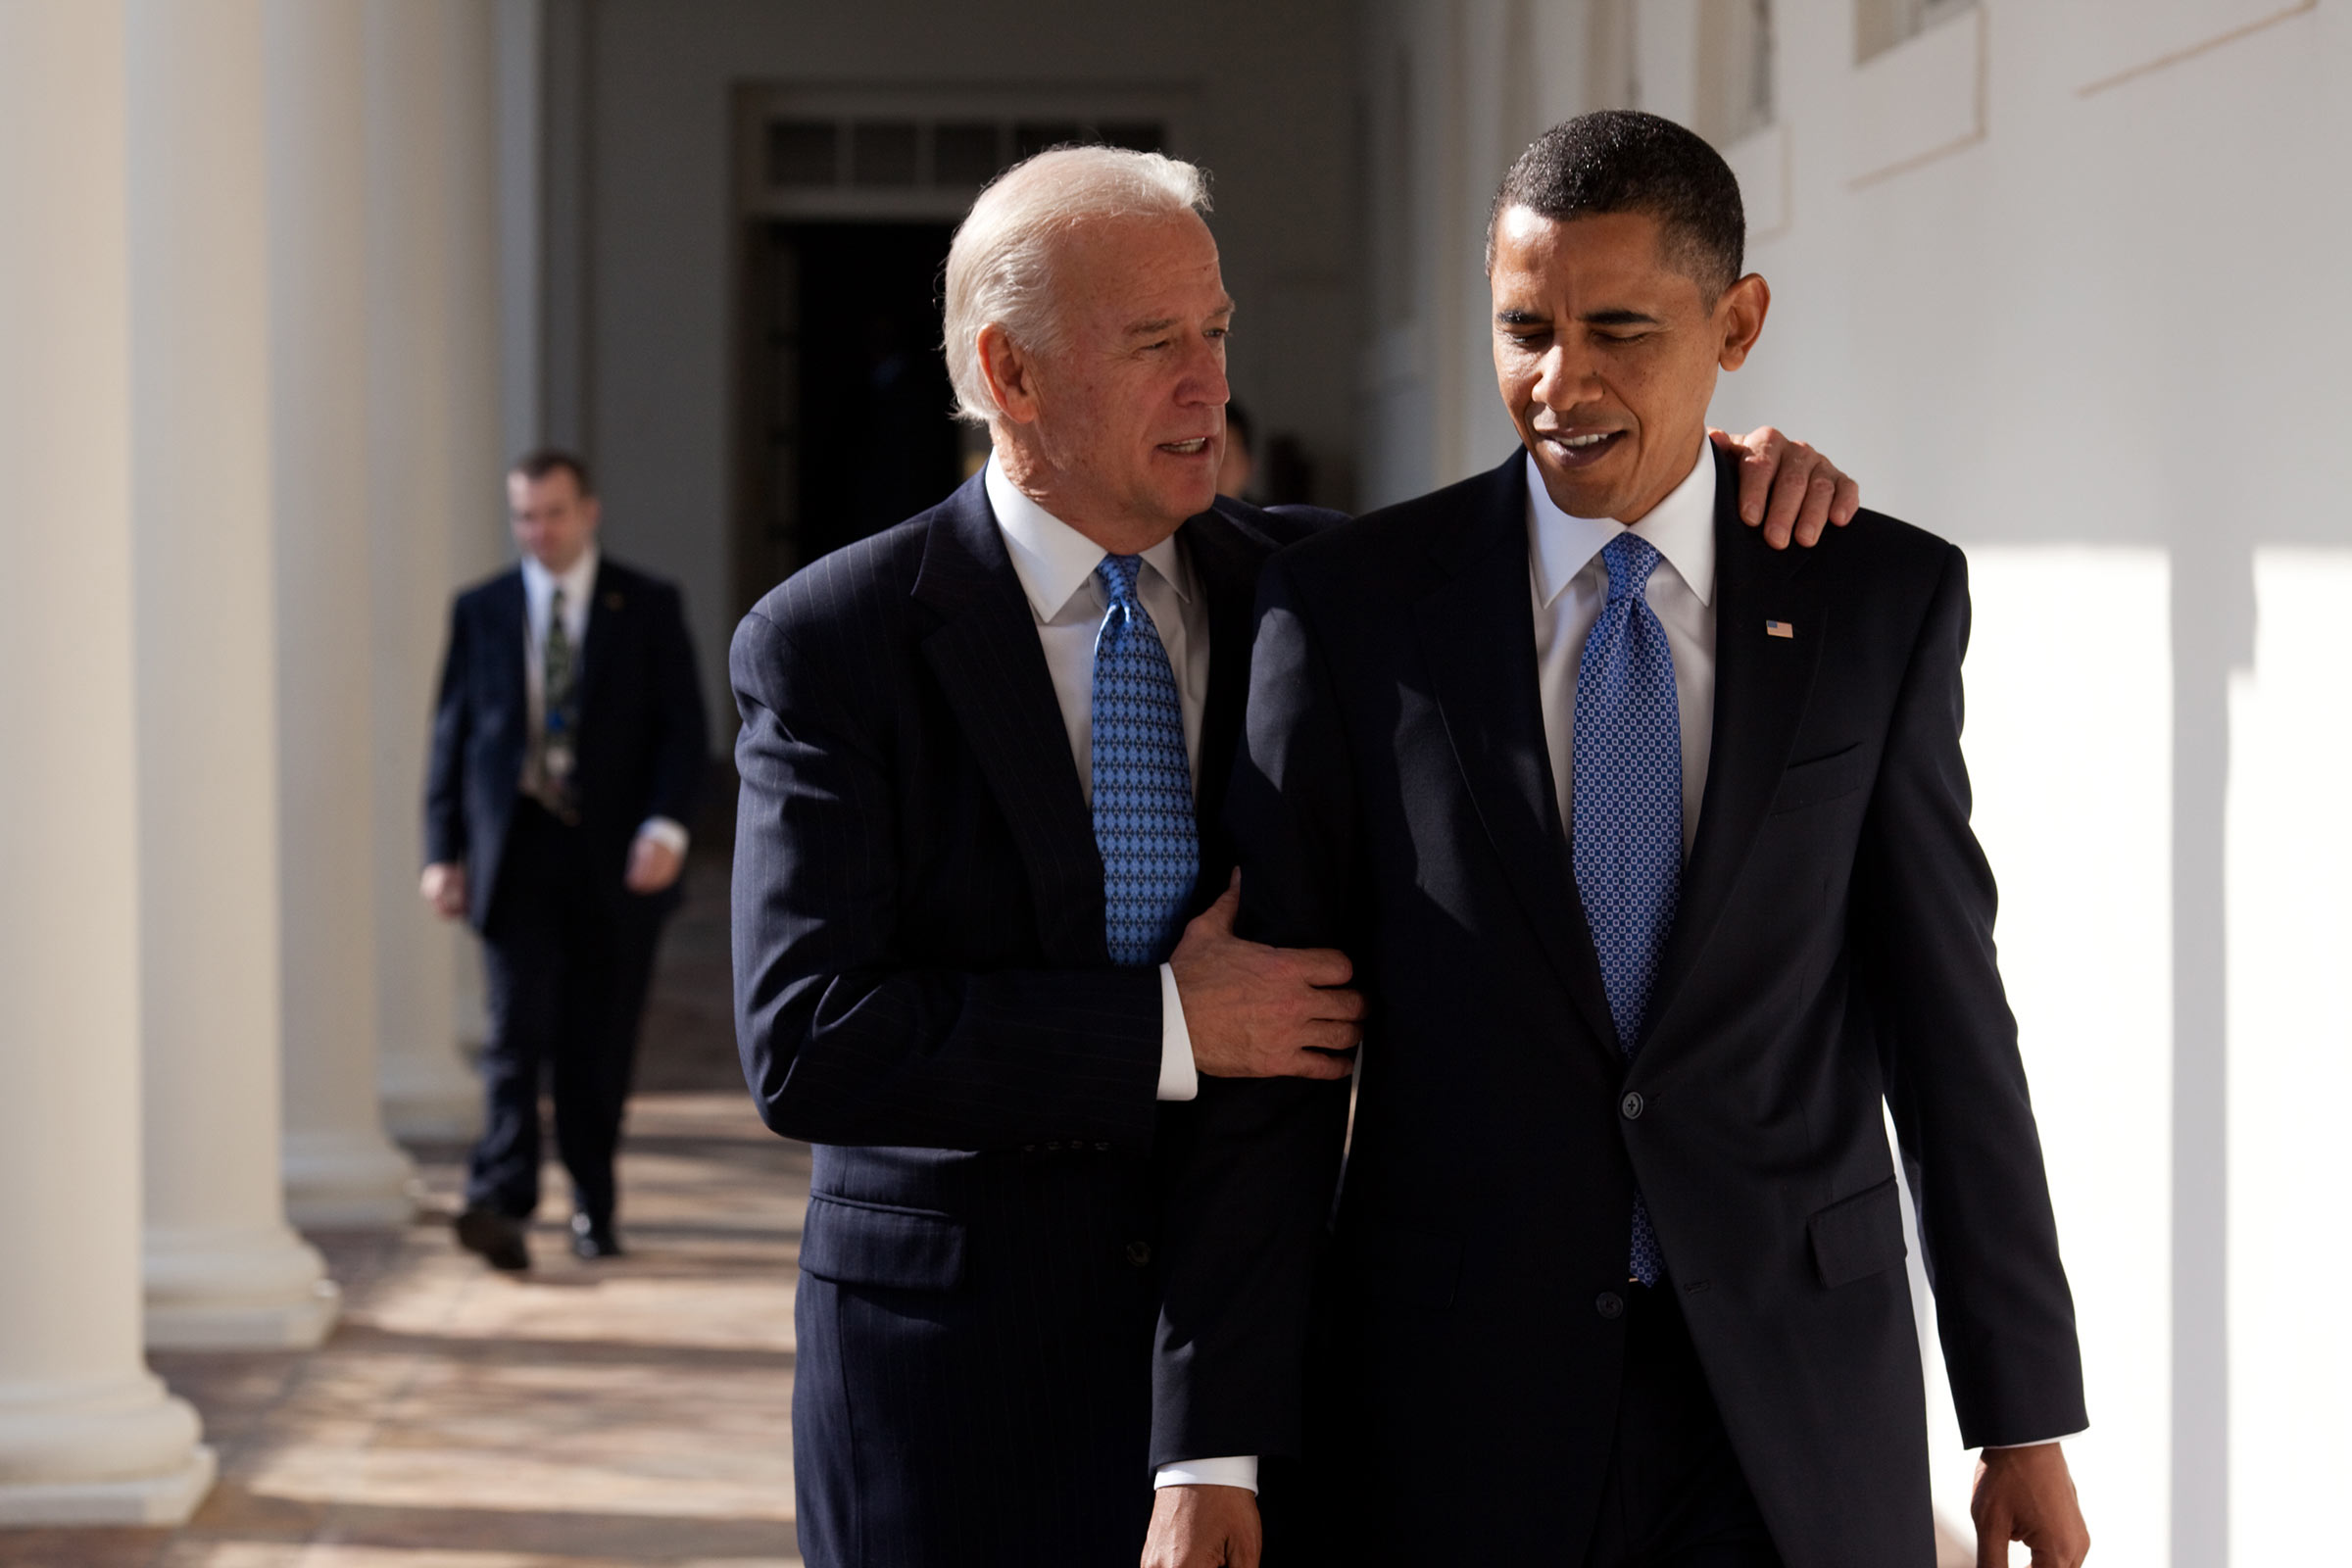 Barack Obama, Barack Obama news, news on Barack Obama, Barack Obama Joe Biden, Joe Biden news, news on Joe Biden, US president Barack Obama, US politics news, Donald Trump, Peter Isackson